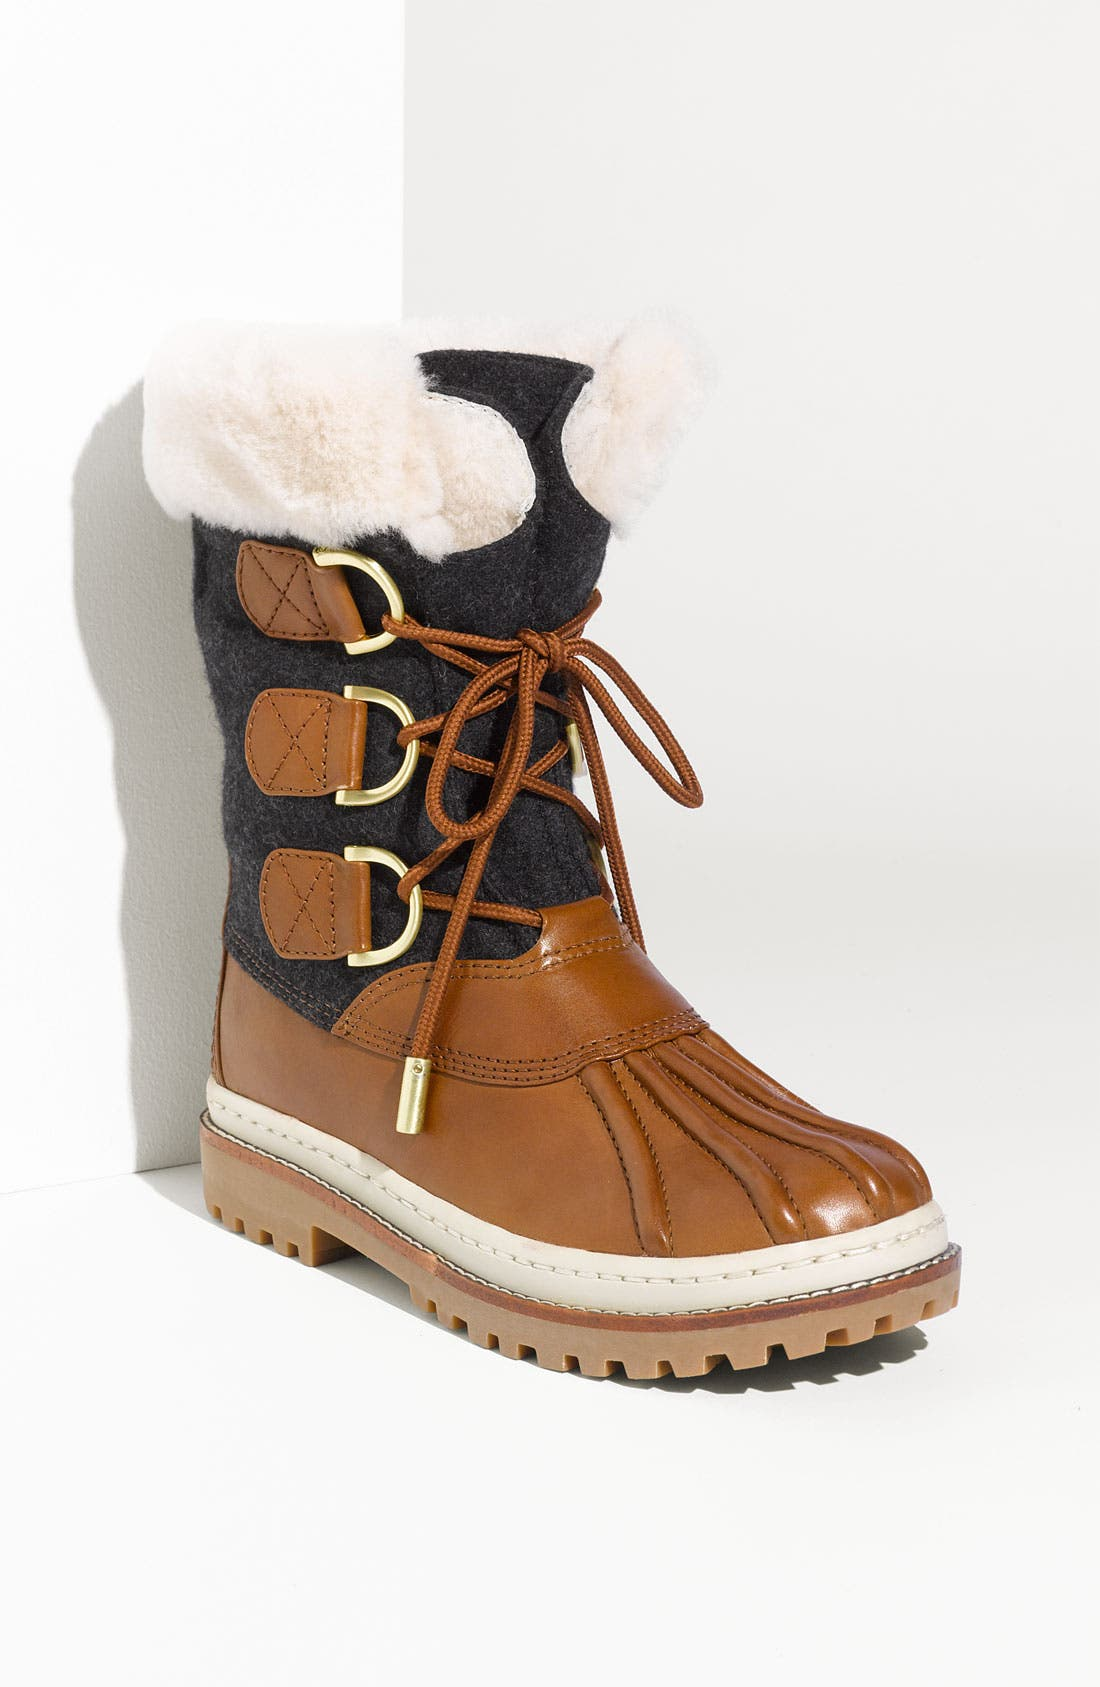 Main Image - Tory Burch Flannel & Leather Duck Boot